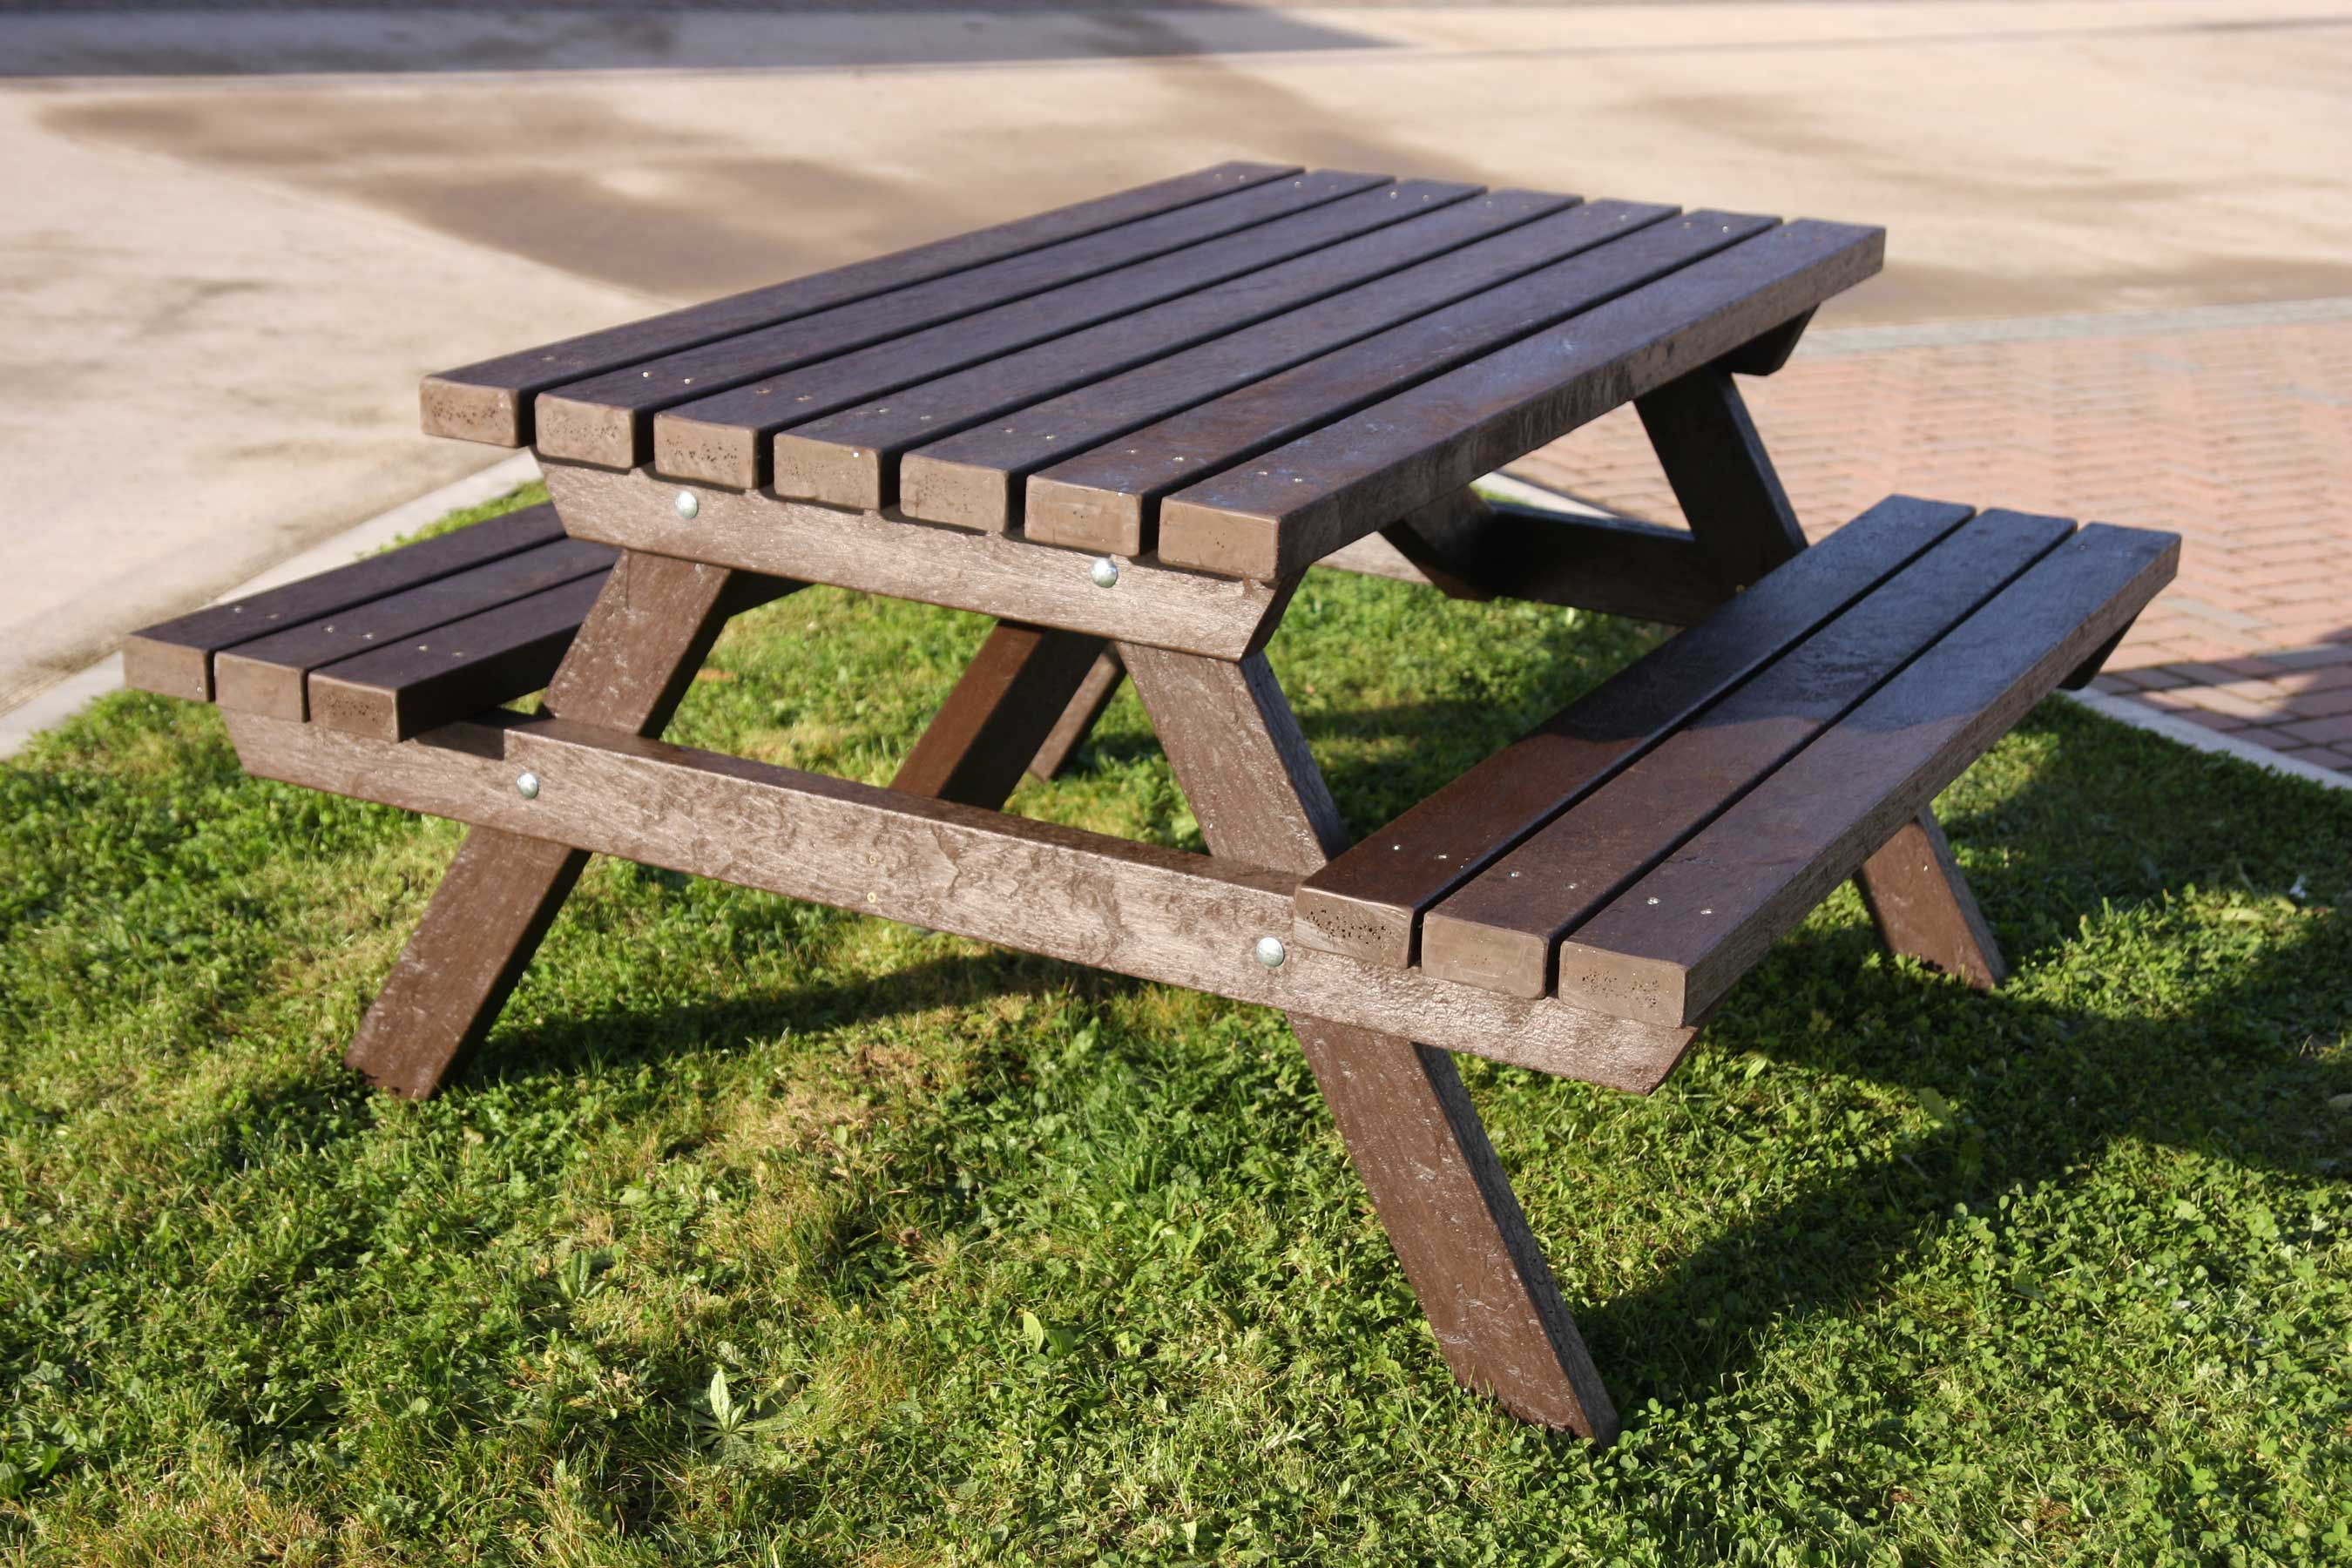 A-frame Salcombe picnic table made from recycled plastic